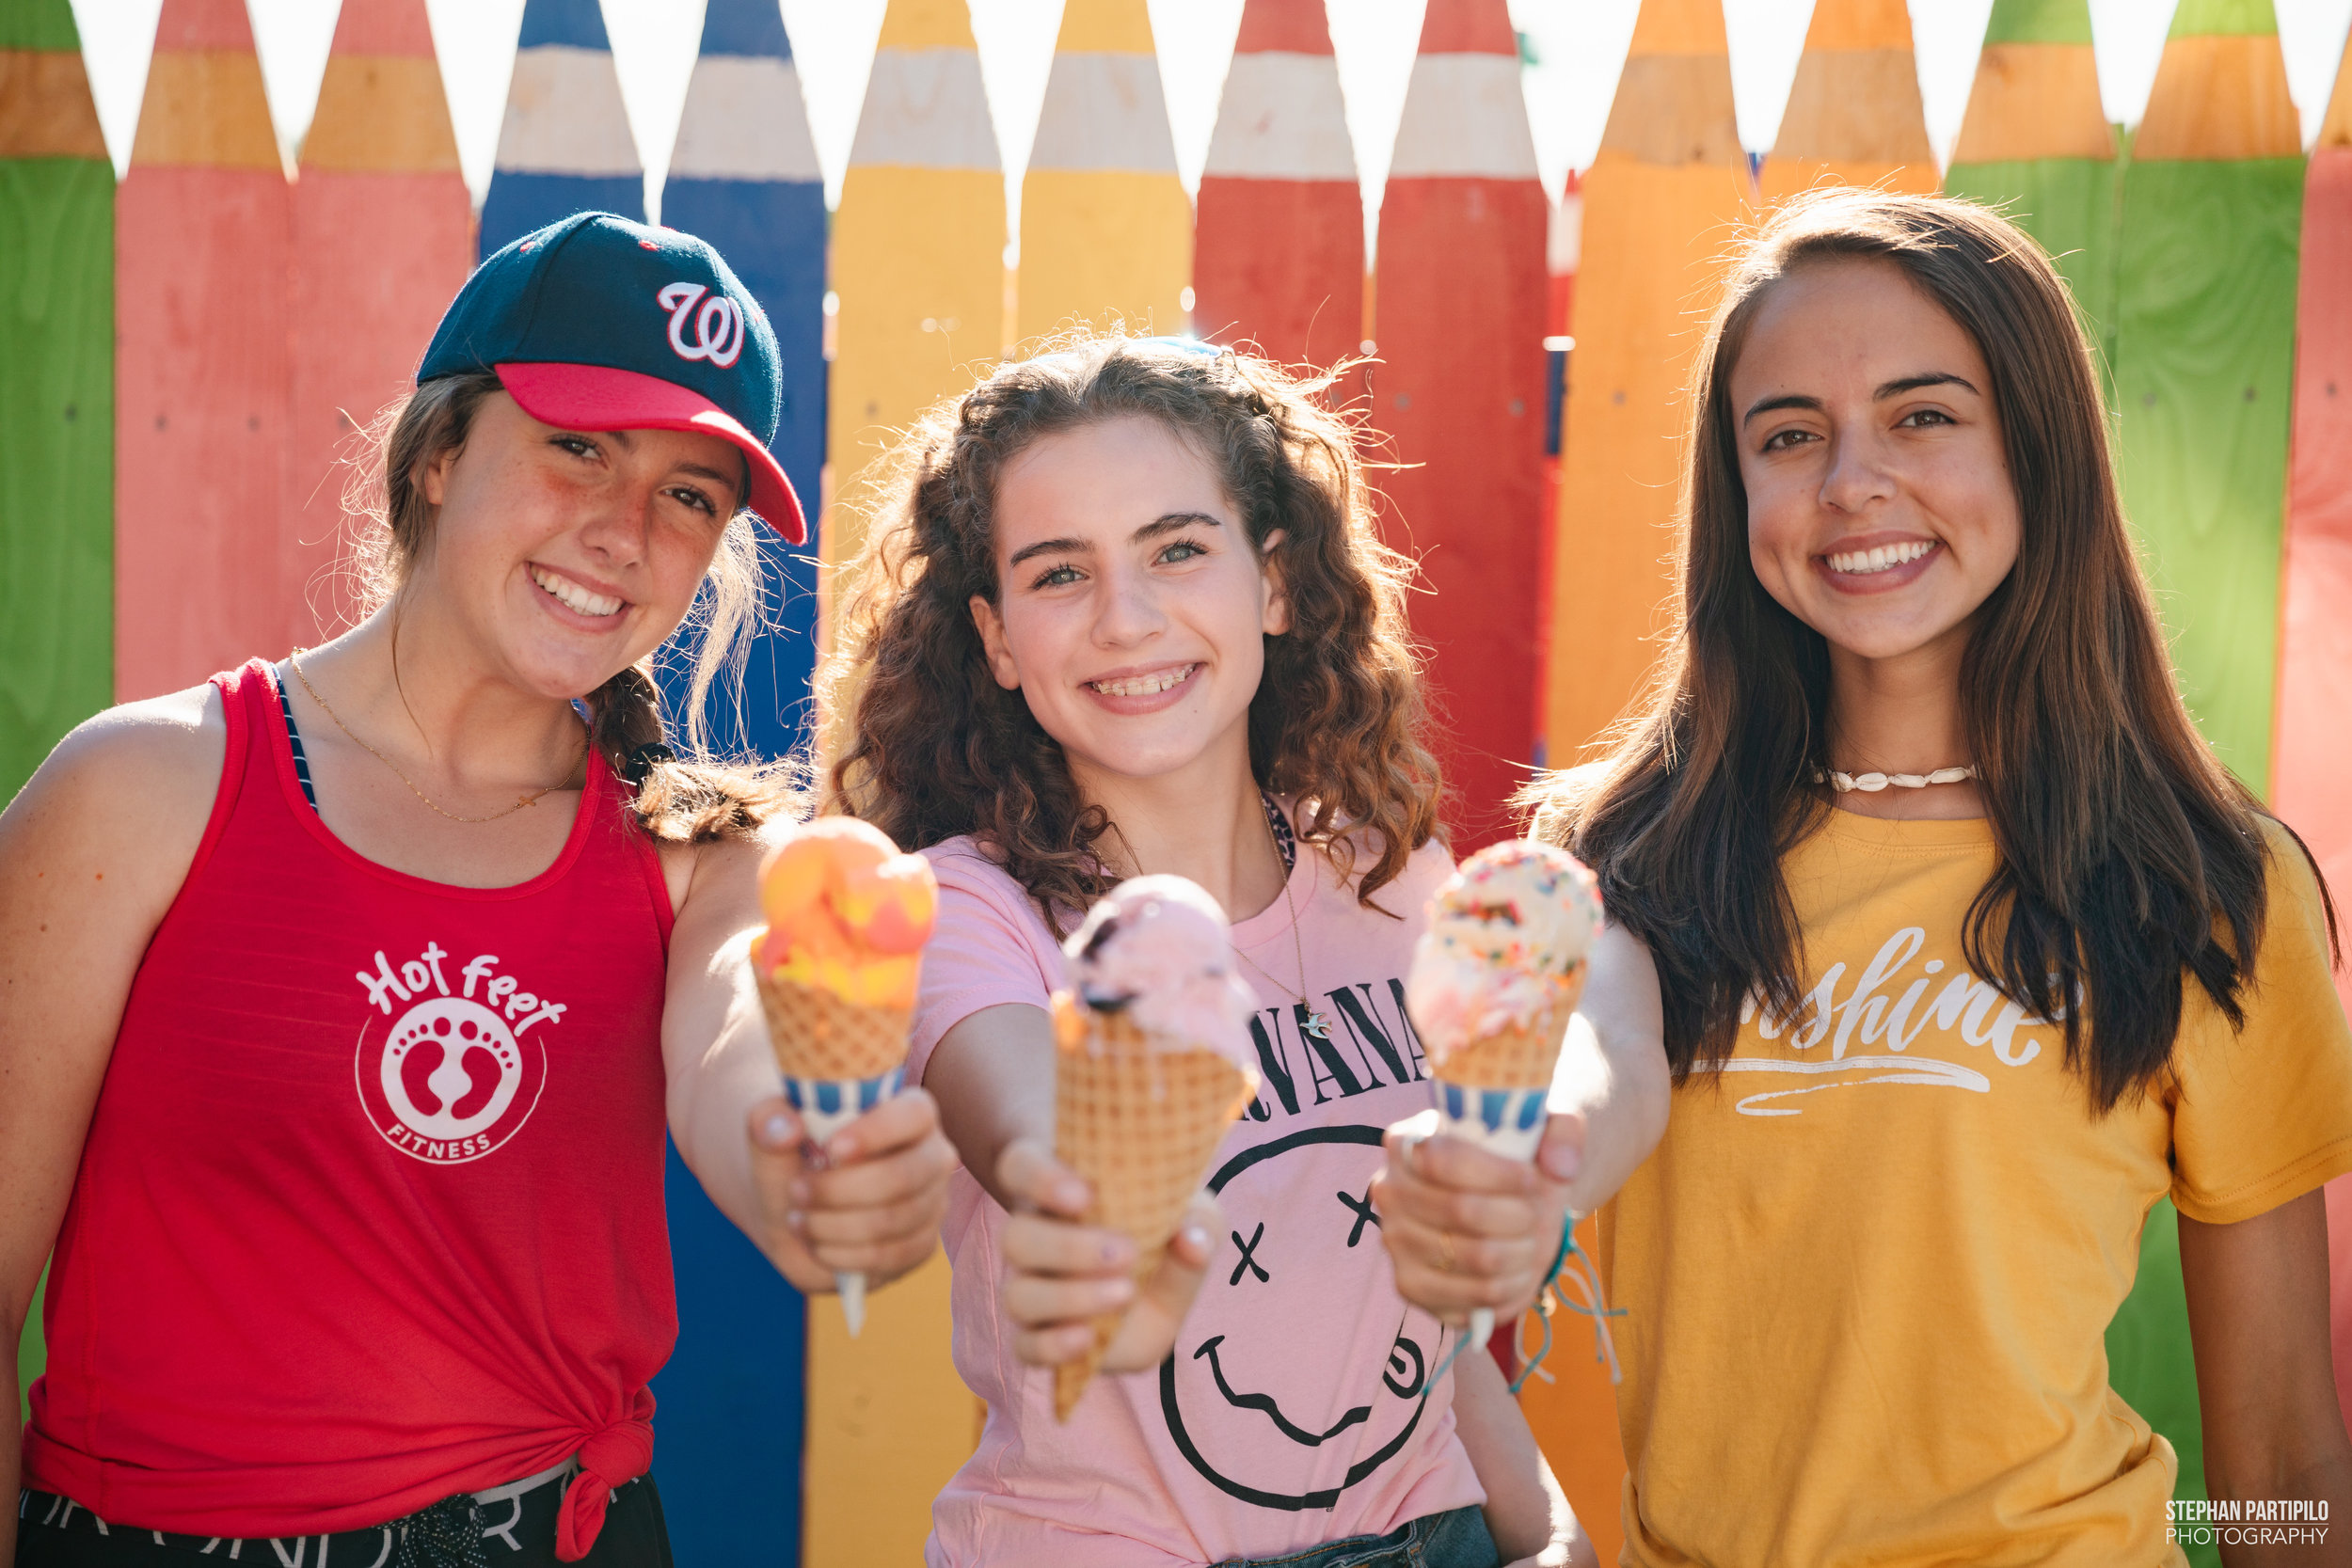 Alki Beach Ice Cream Seattle 2019 0G5A7190.jpg